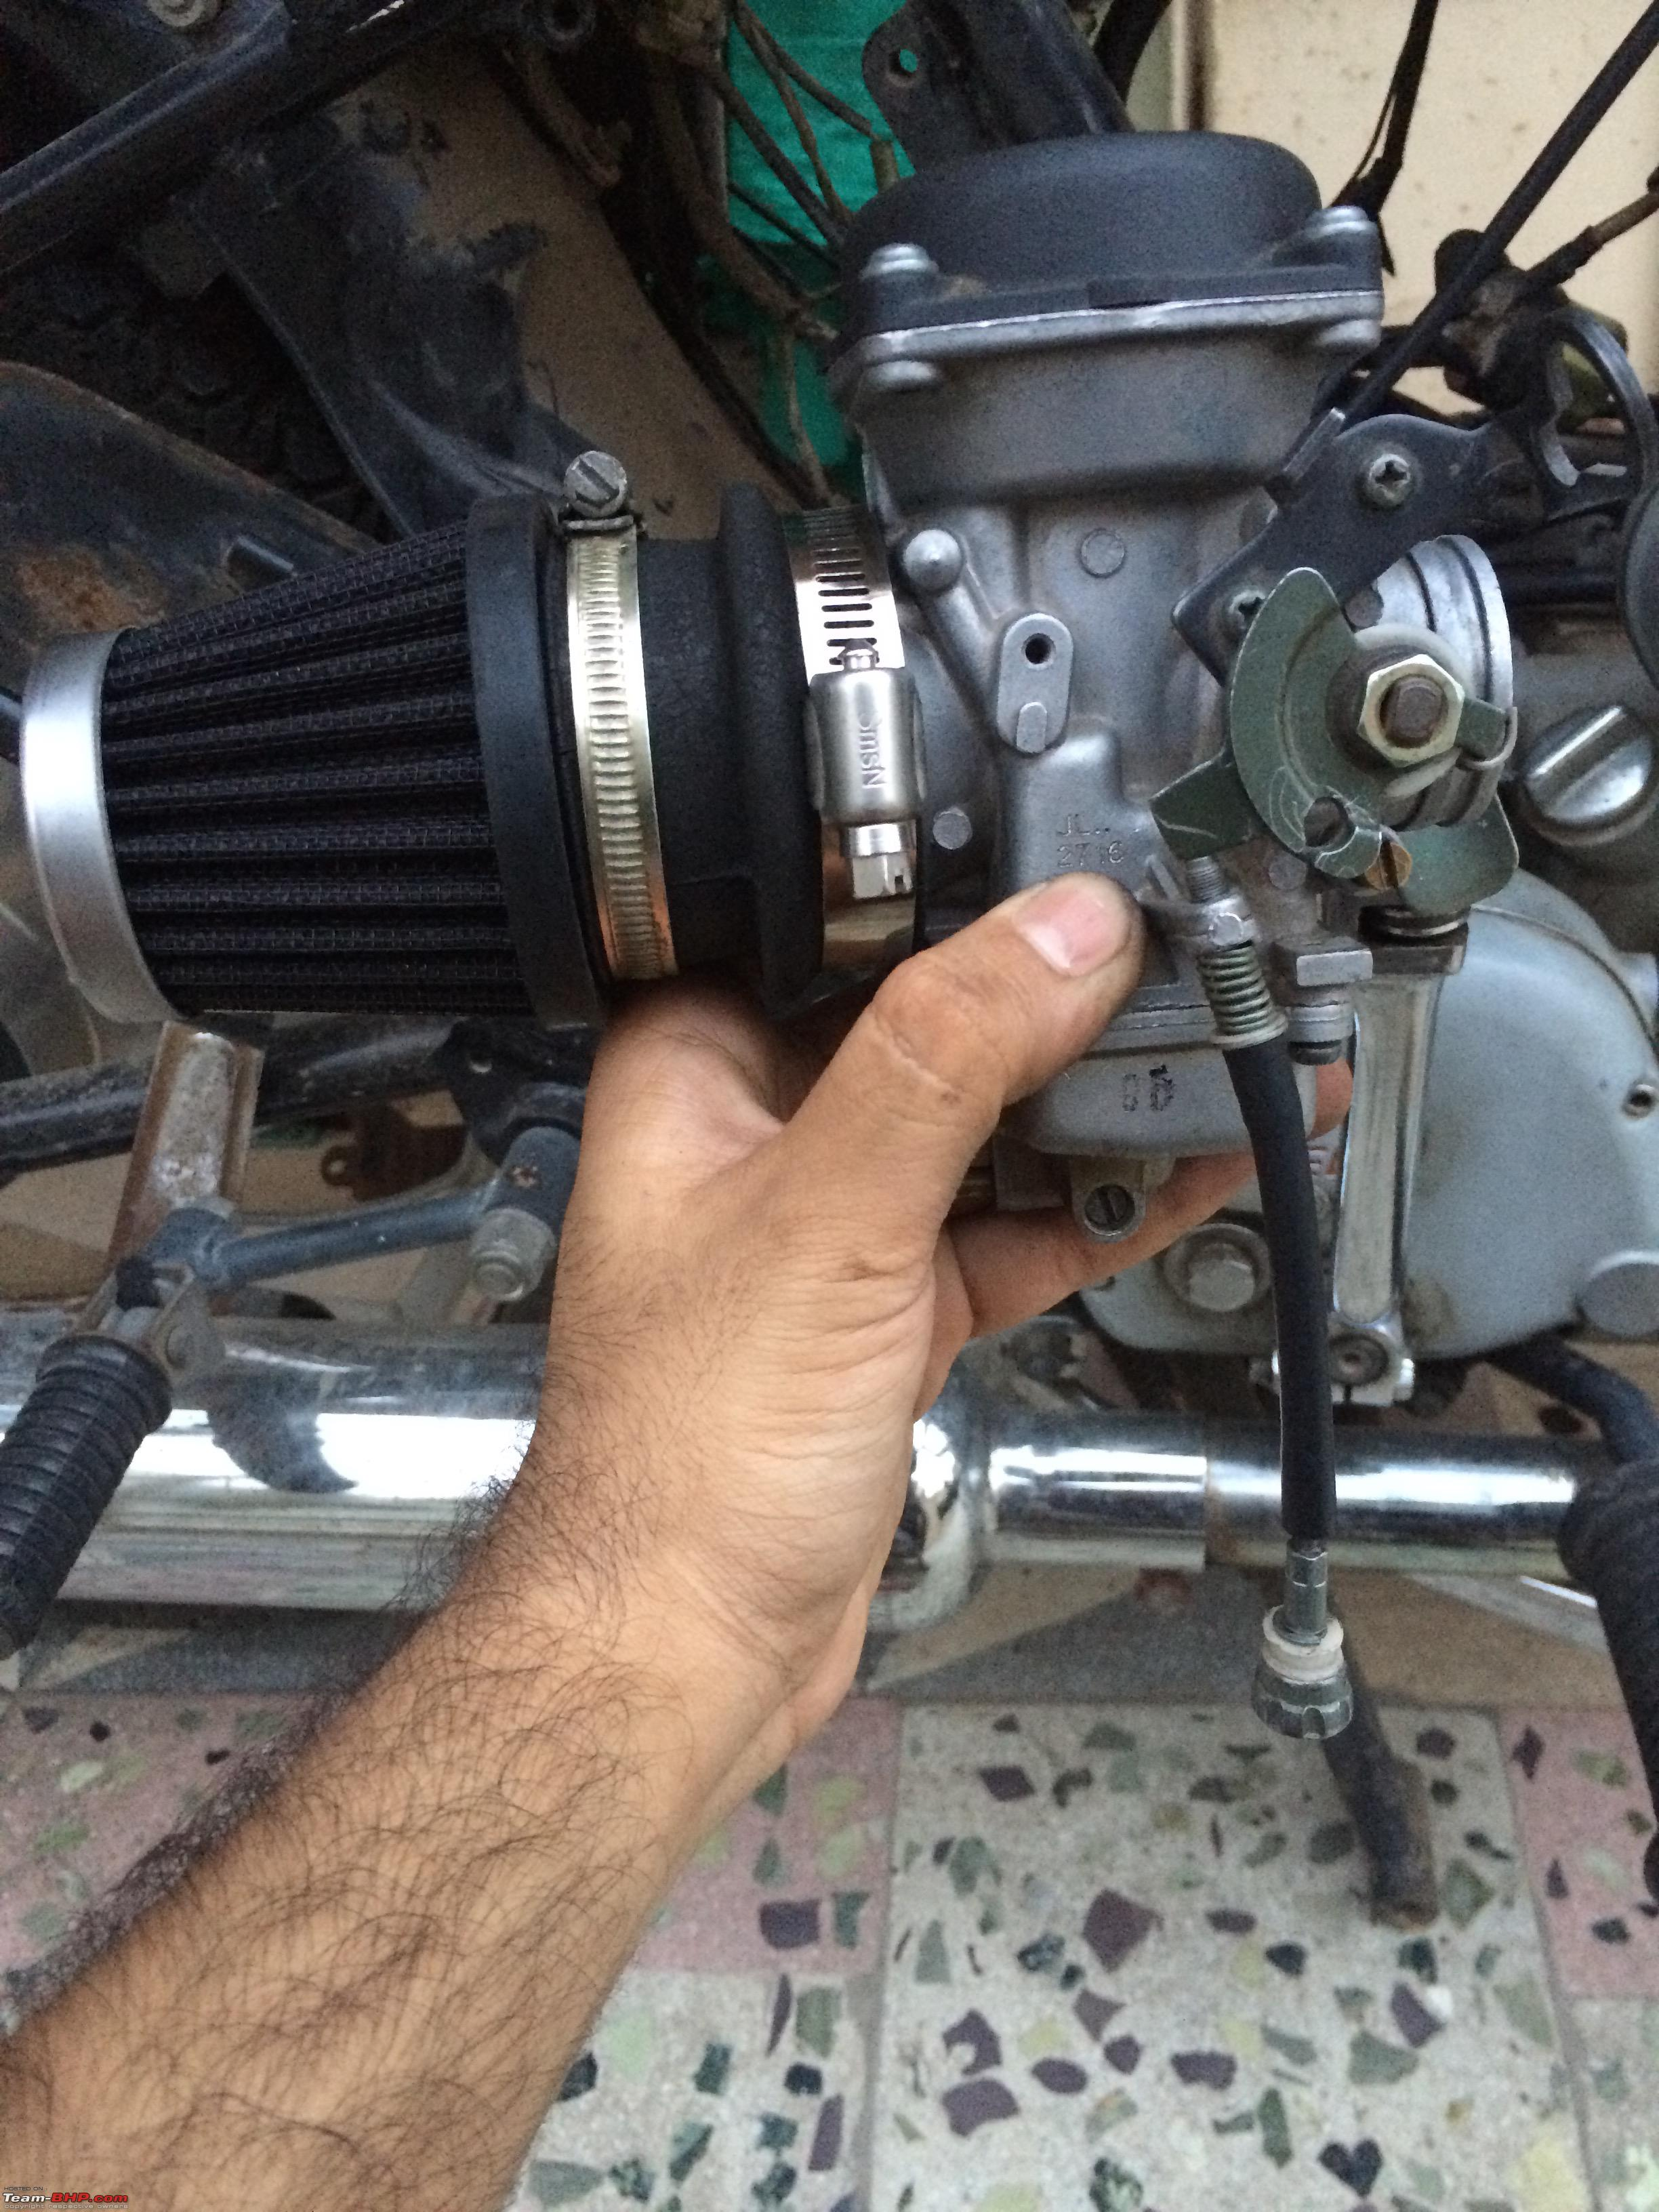 Enfield: Upgrade from BS26 to BS29 carburetor? - Page 2